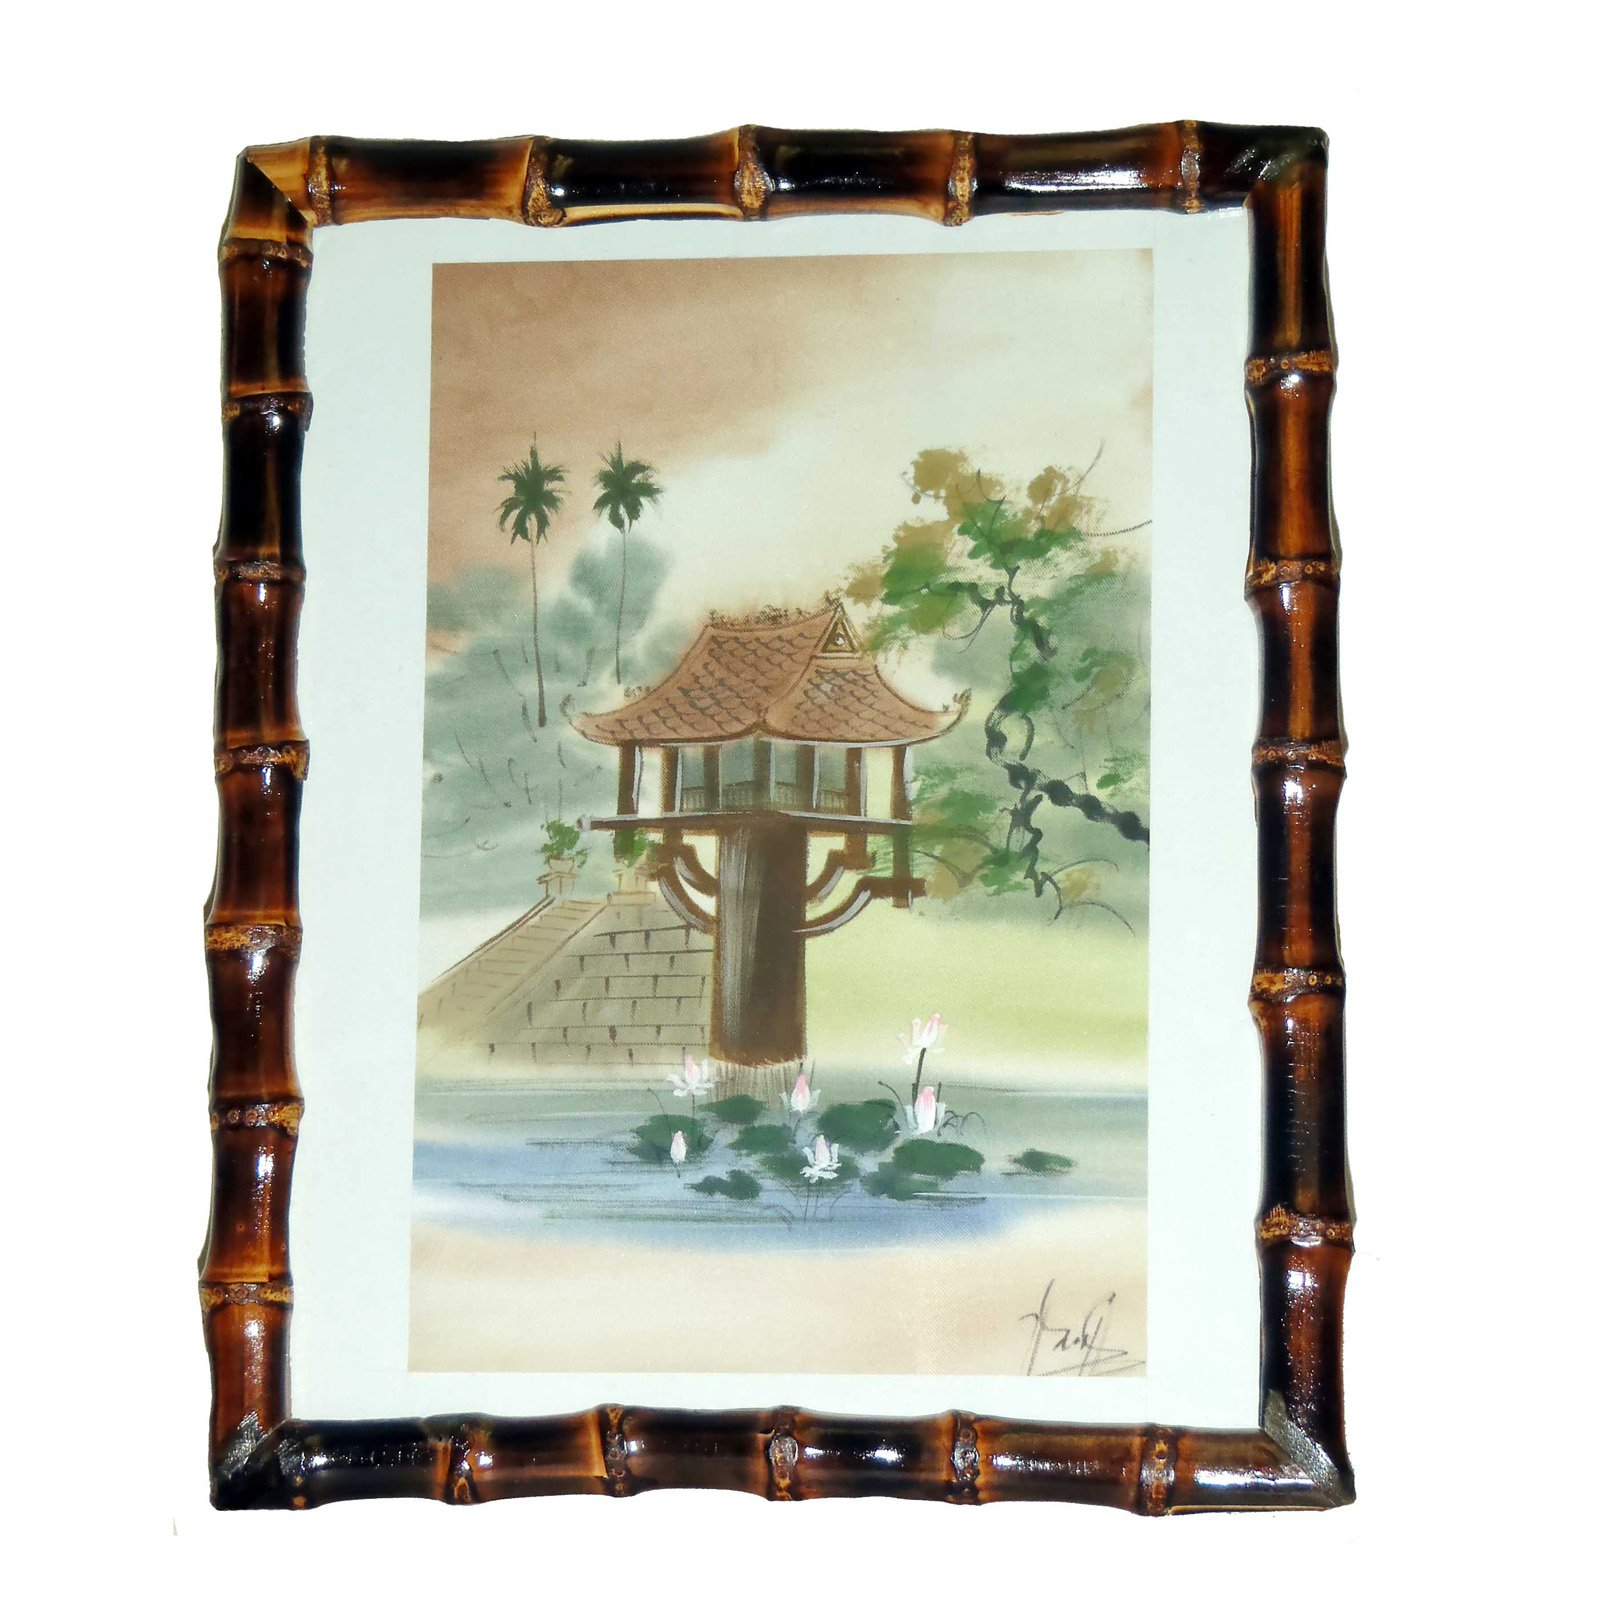 Bamboo54 Bamboo Root 11 x 14 in. Picture Frame